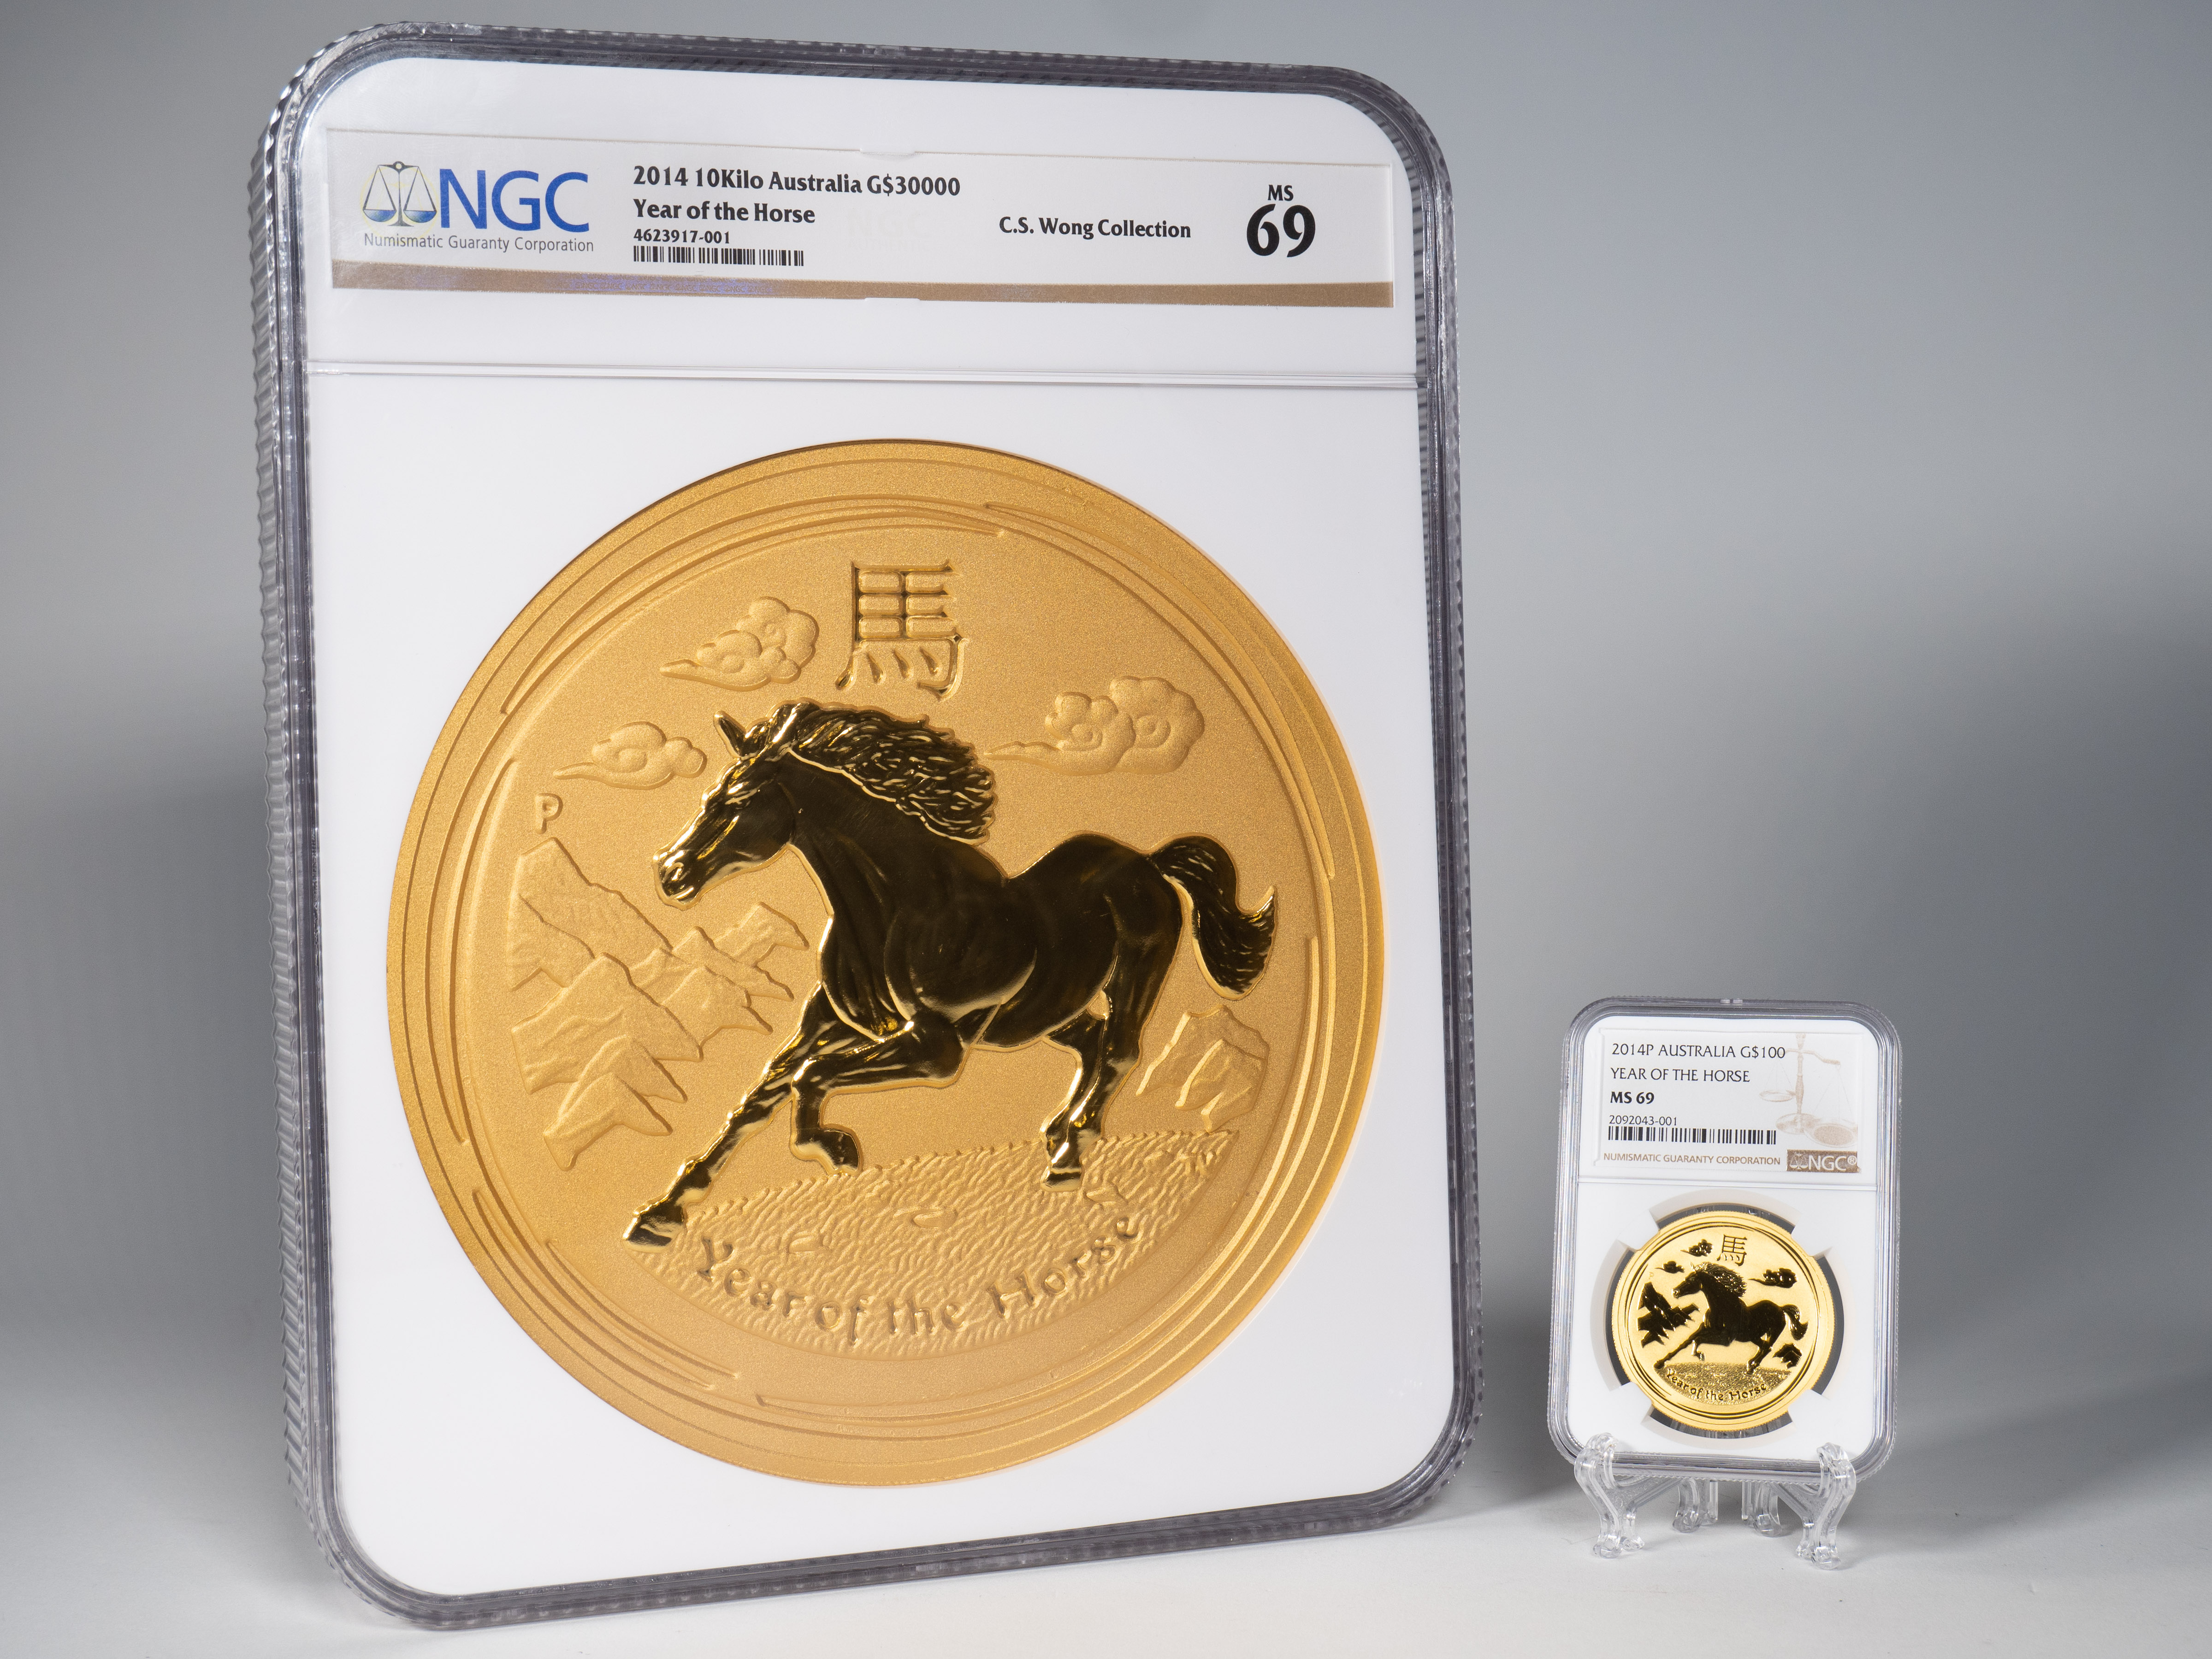 thumbnail image for Press Release: NGC Certifies Massive Gold Pieces